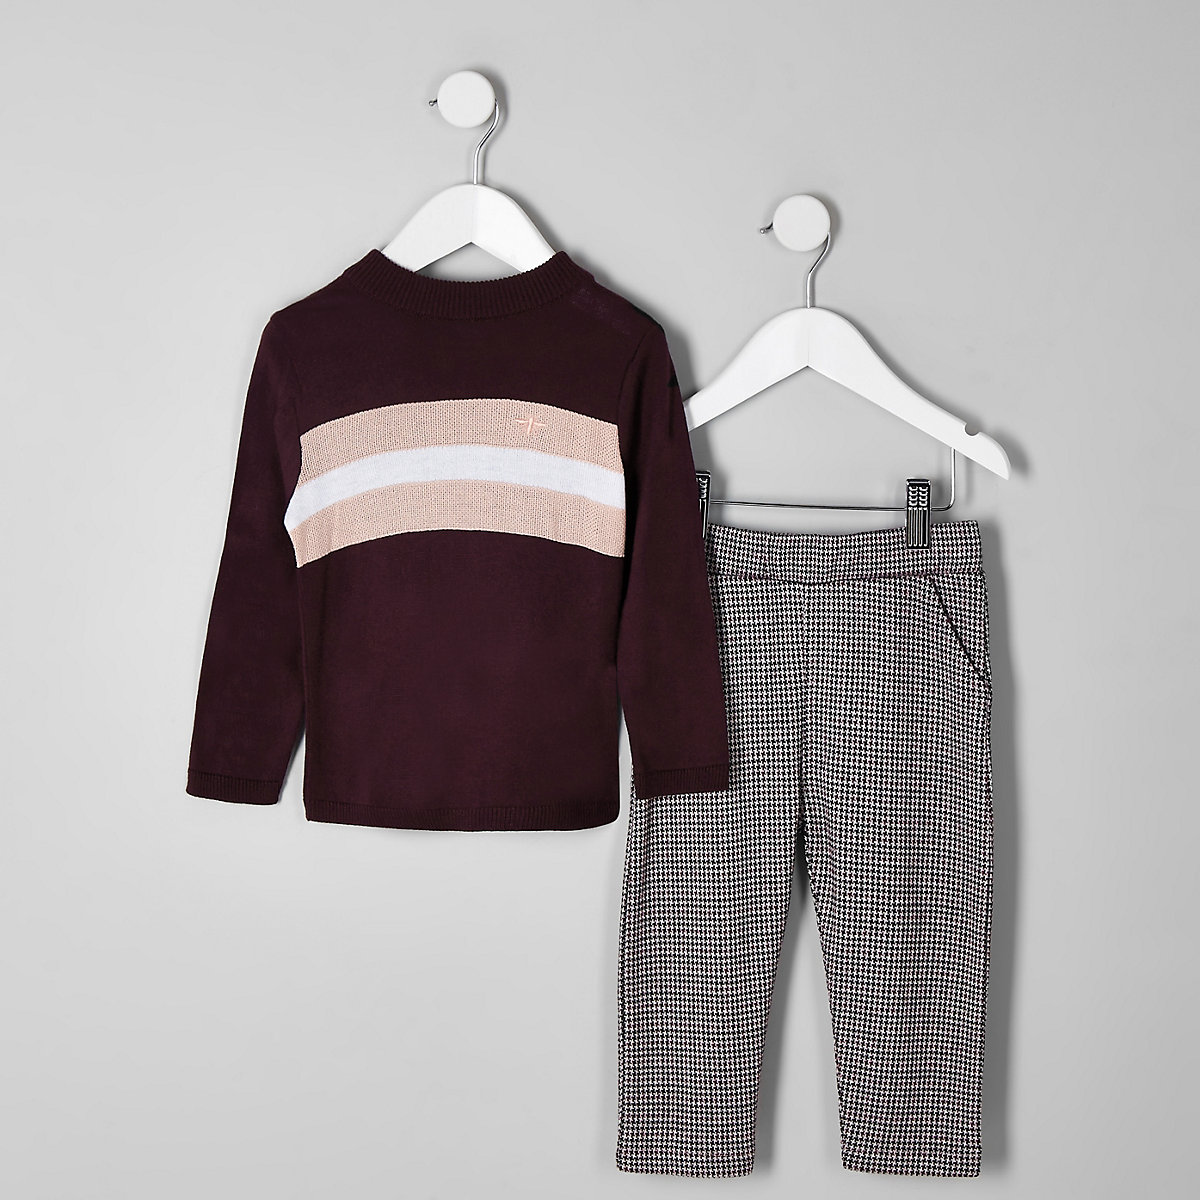 Mini boys red colour block outfit